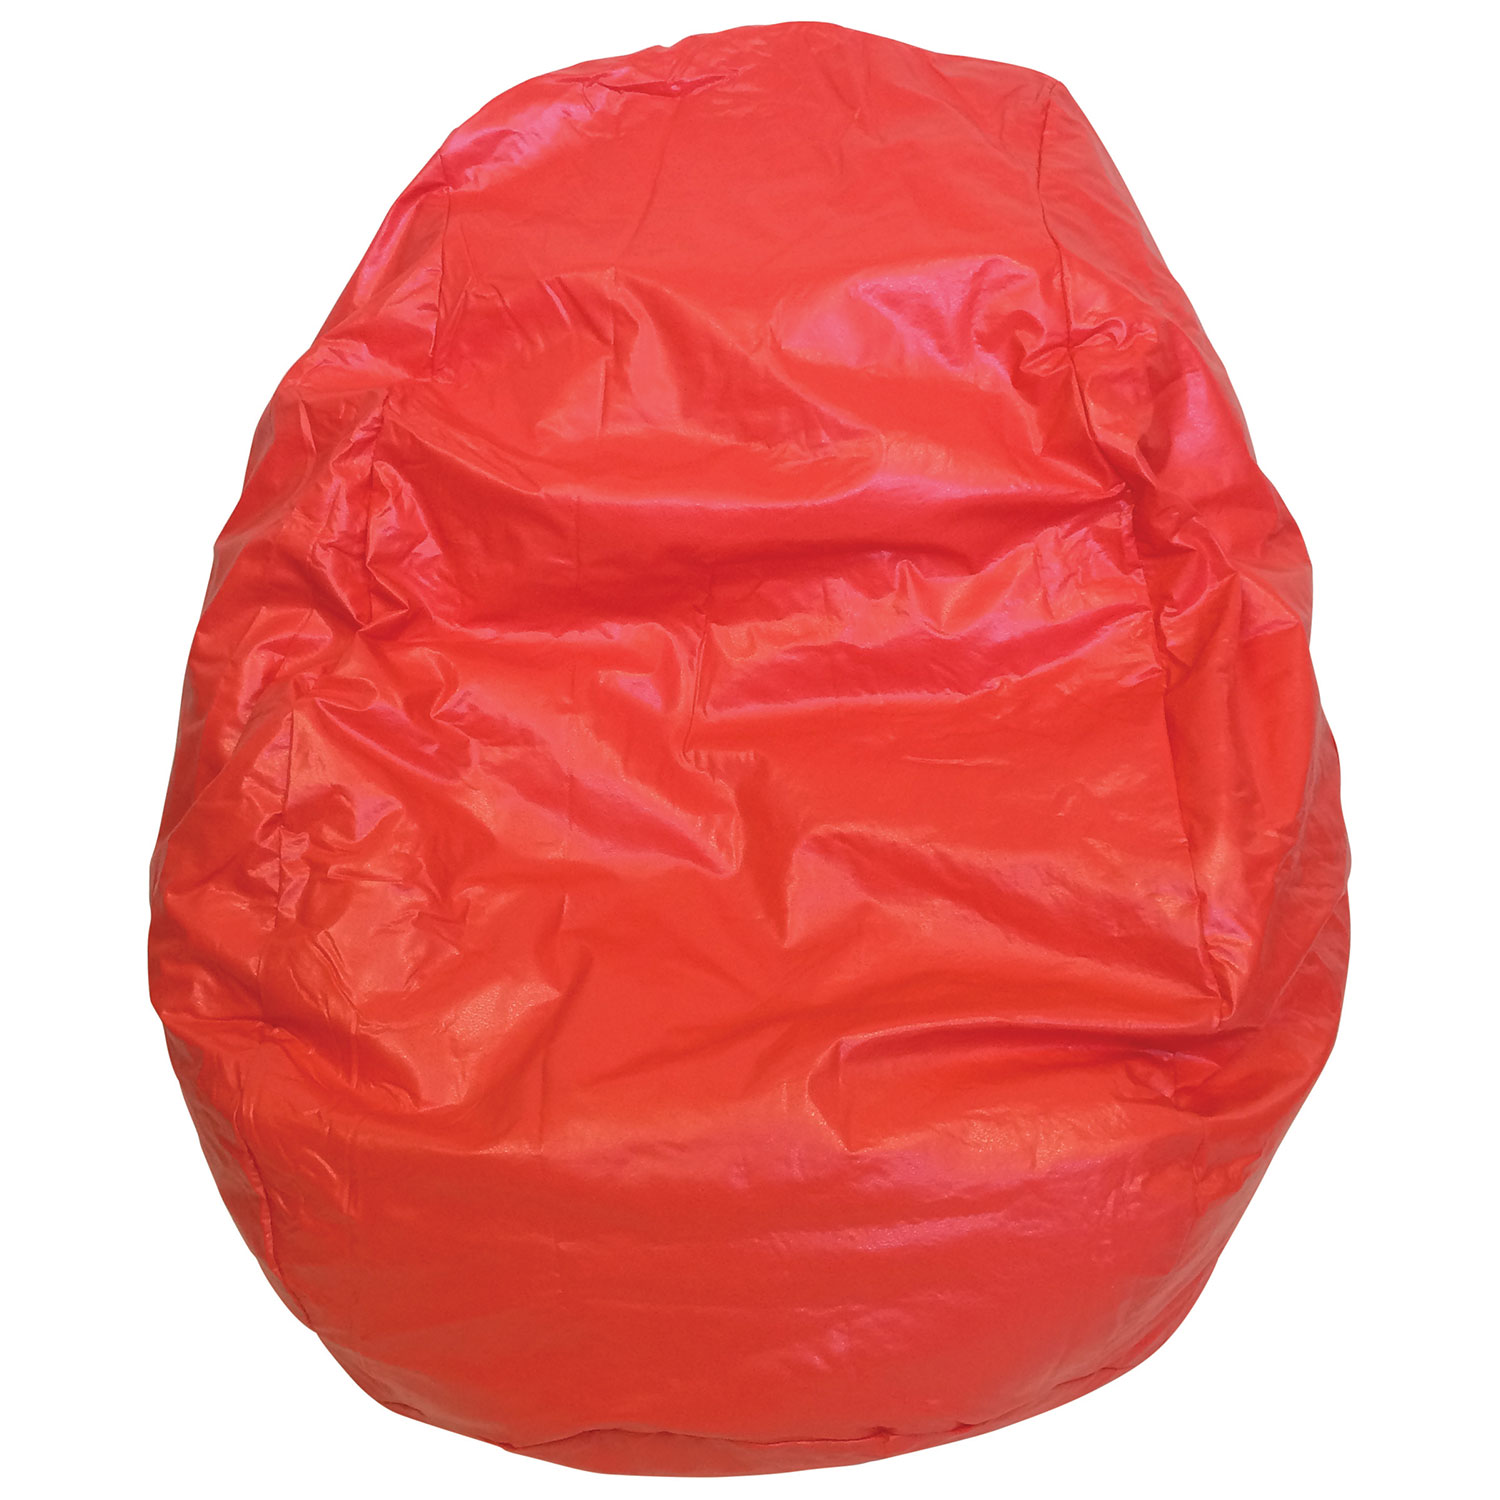 modern vinyl bean bag chair  red ()  kids  teens  - modern vinyl bean bag chair  red ()  kids  teens chairs  bestbuy canada